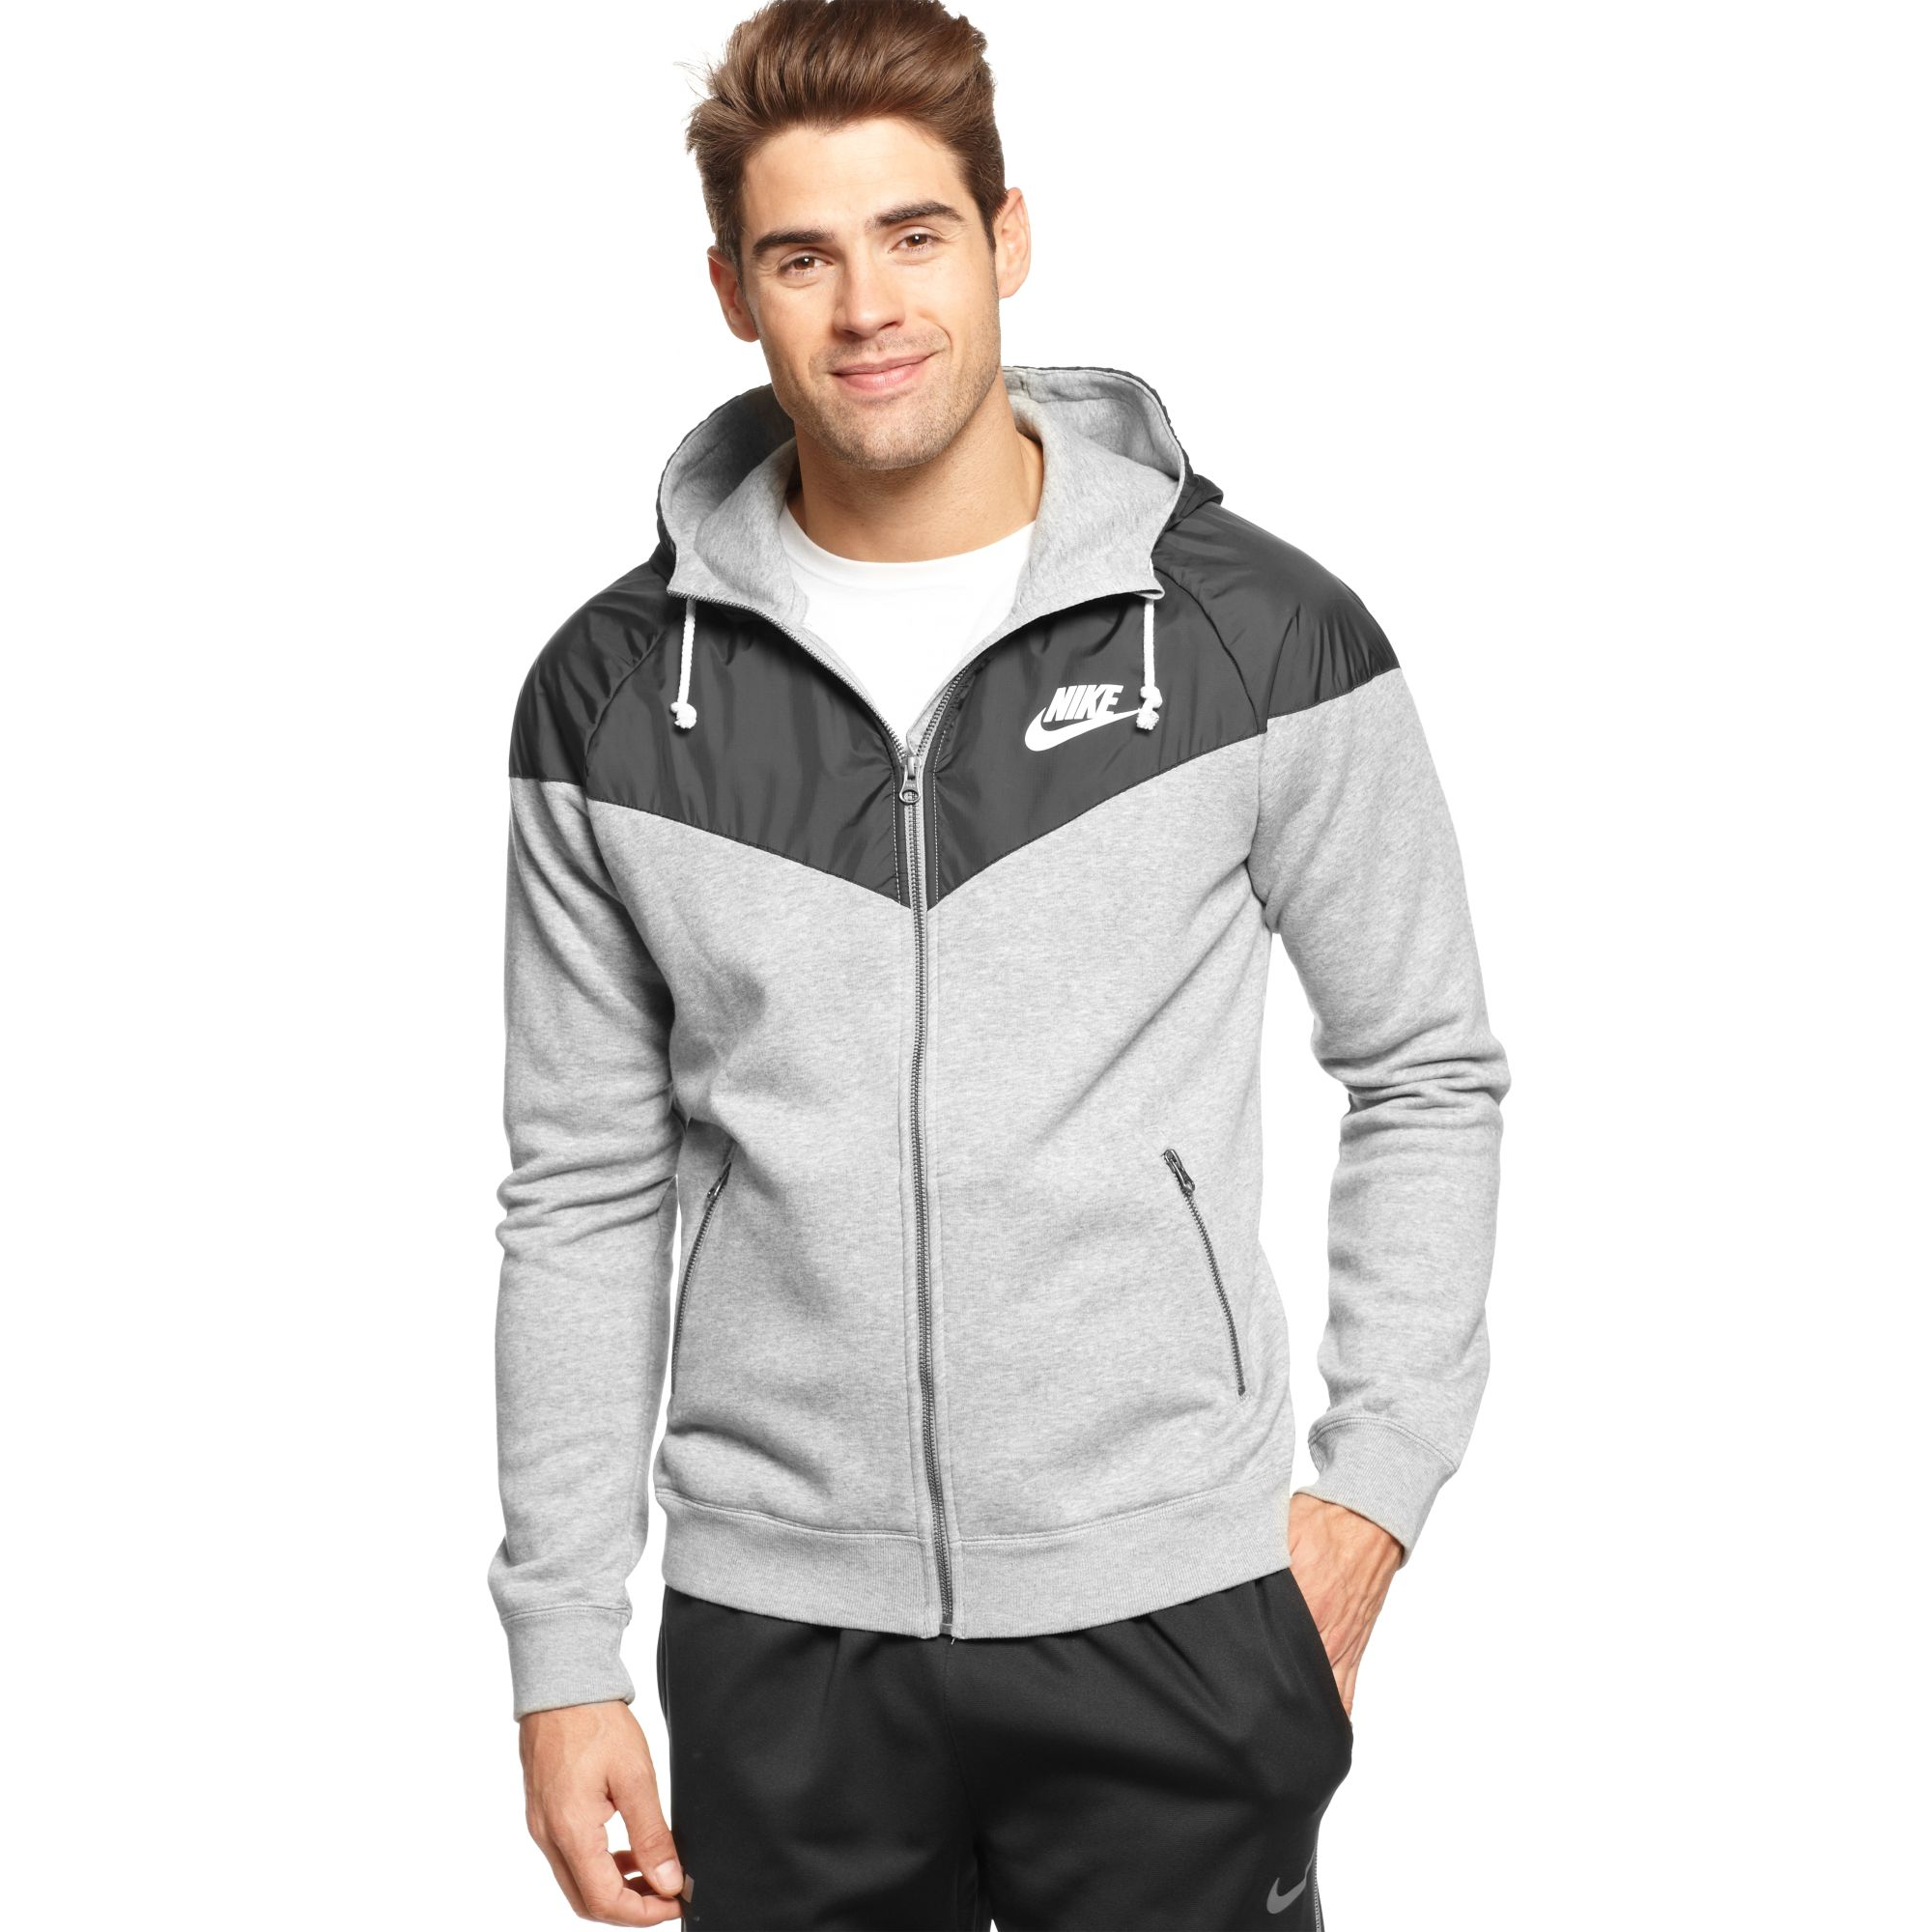 Nike windrunner fleece zip front hoodie in gray for men lyst for Zip front flannel shirt